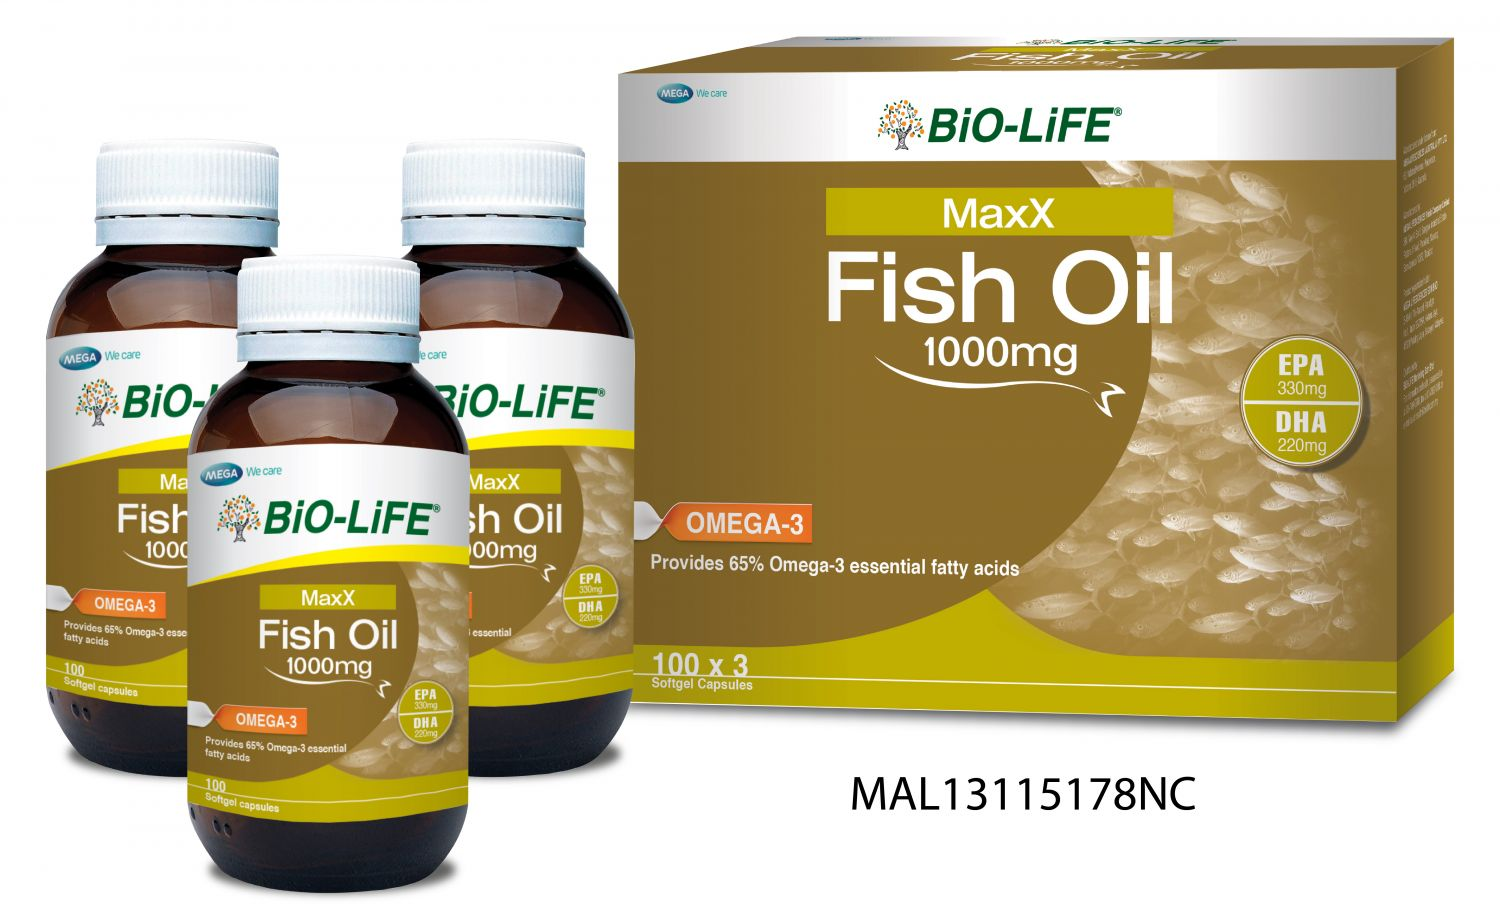 bio-life maxx fish oil - made from high strength quality fish oil